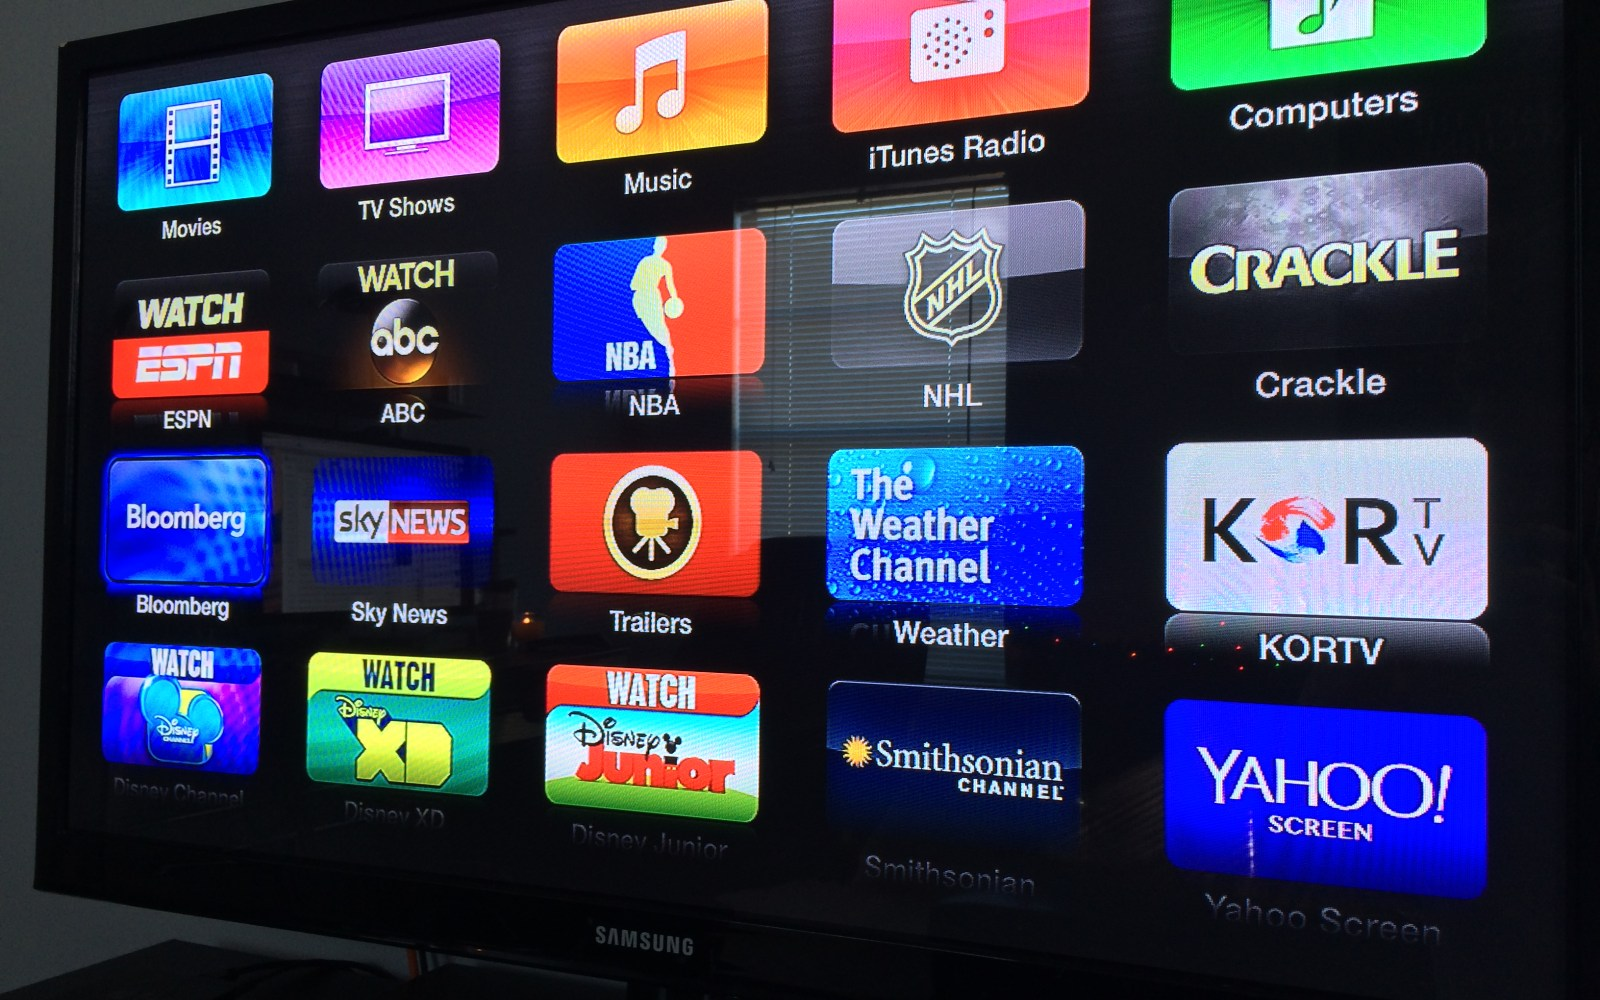 Apple TV adds Crackle, Watch ABC, and KORTV channels in addition to Bloomberg